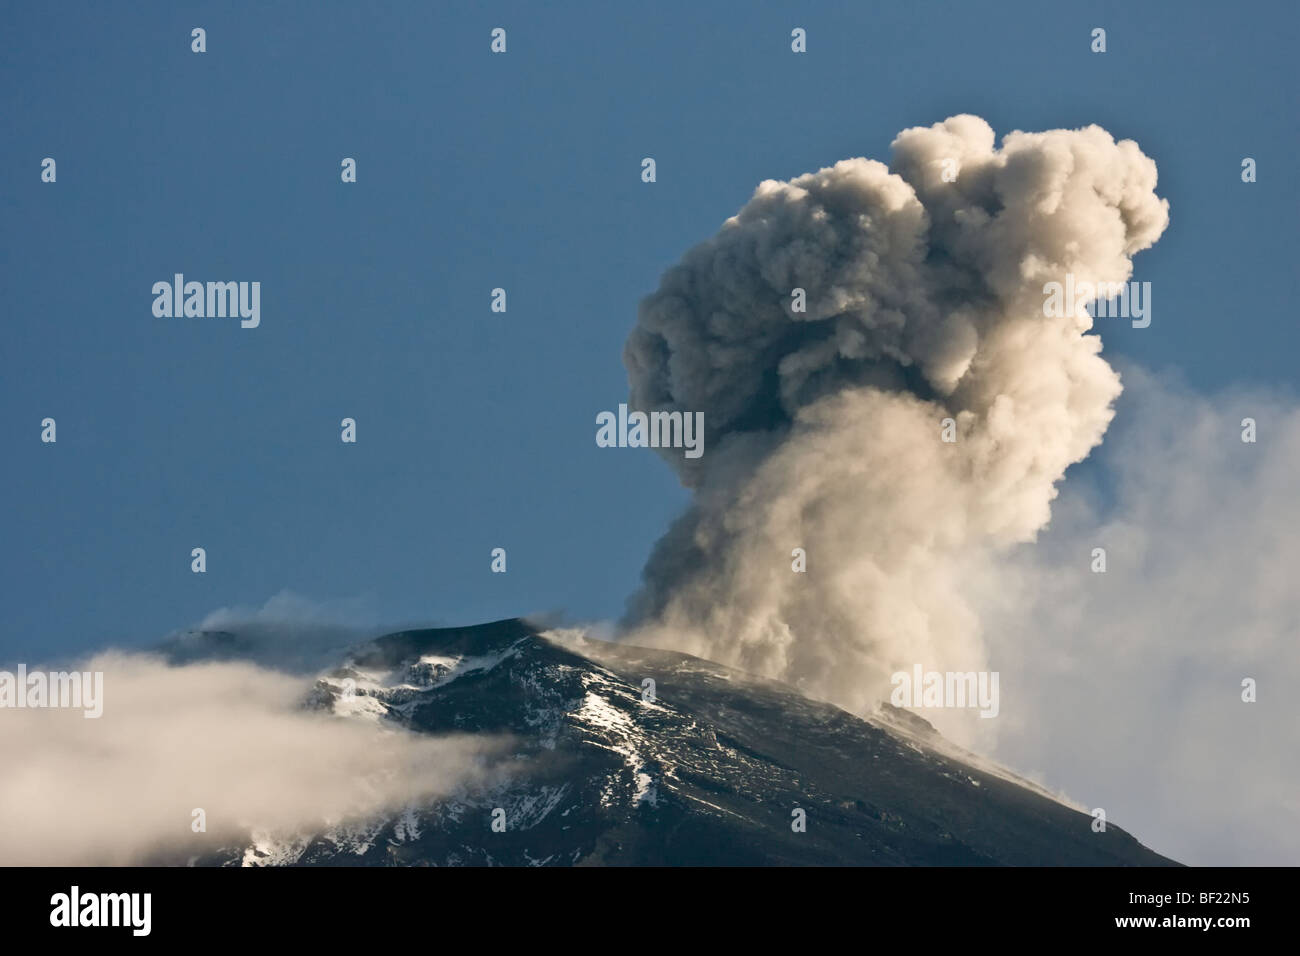 Tortugeuro volcano blowing off ash and smoke, a minor eruption. - Stock Image